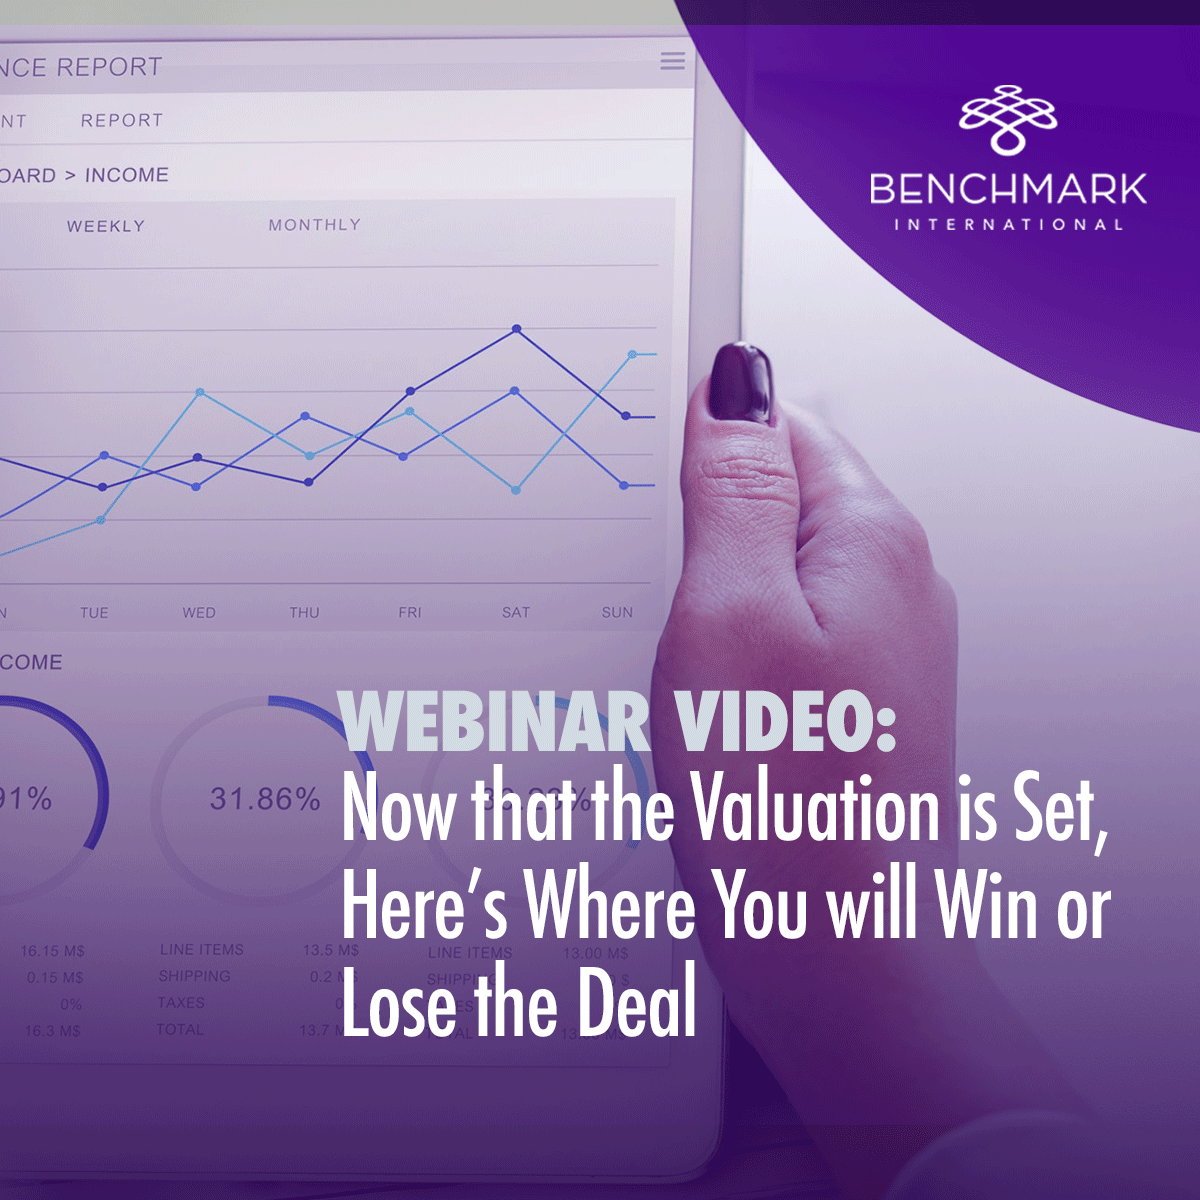 Webinar Video Now That the Valuation is Set, Here's Where You will Win or Lose the Deal